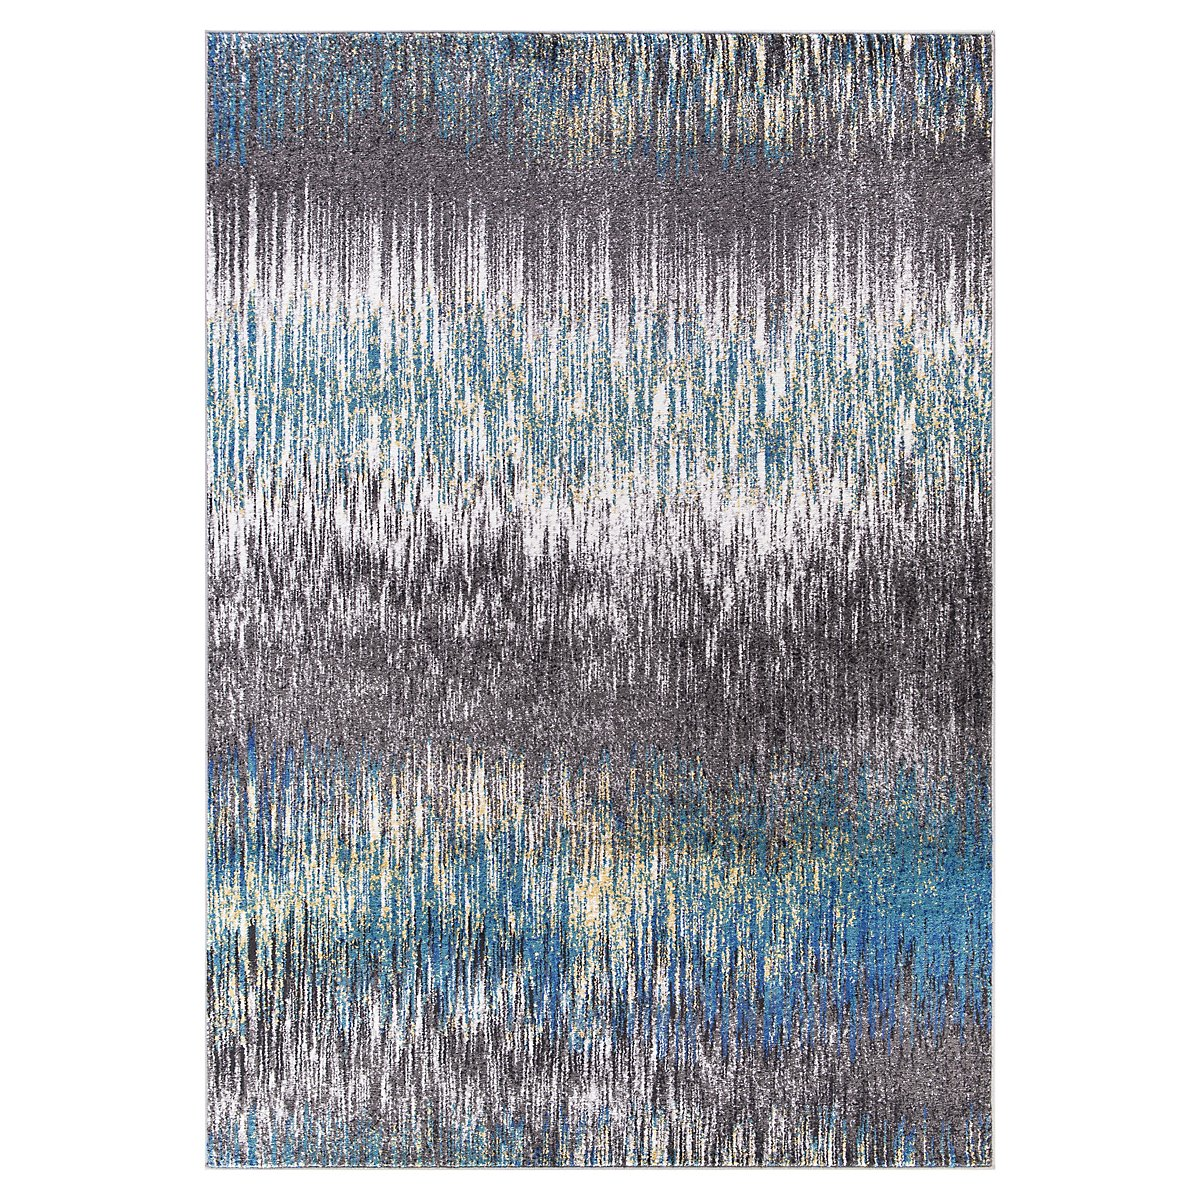 Unique Multicolored 8x10 Area Rug